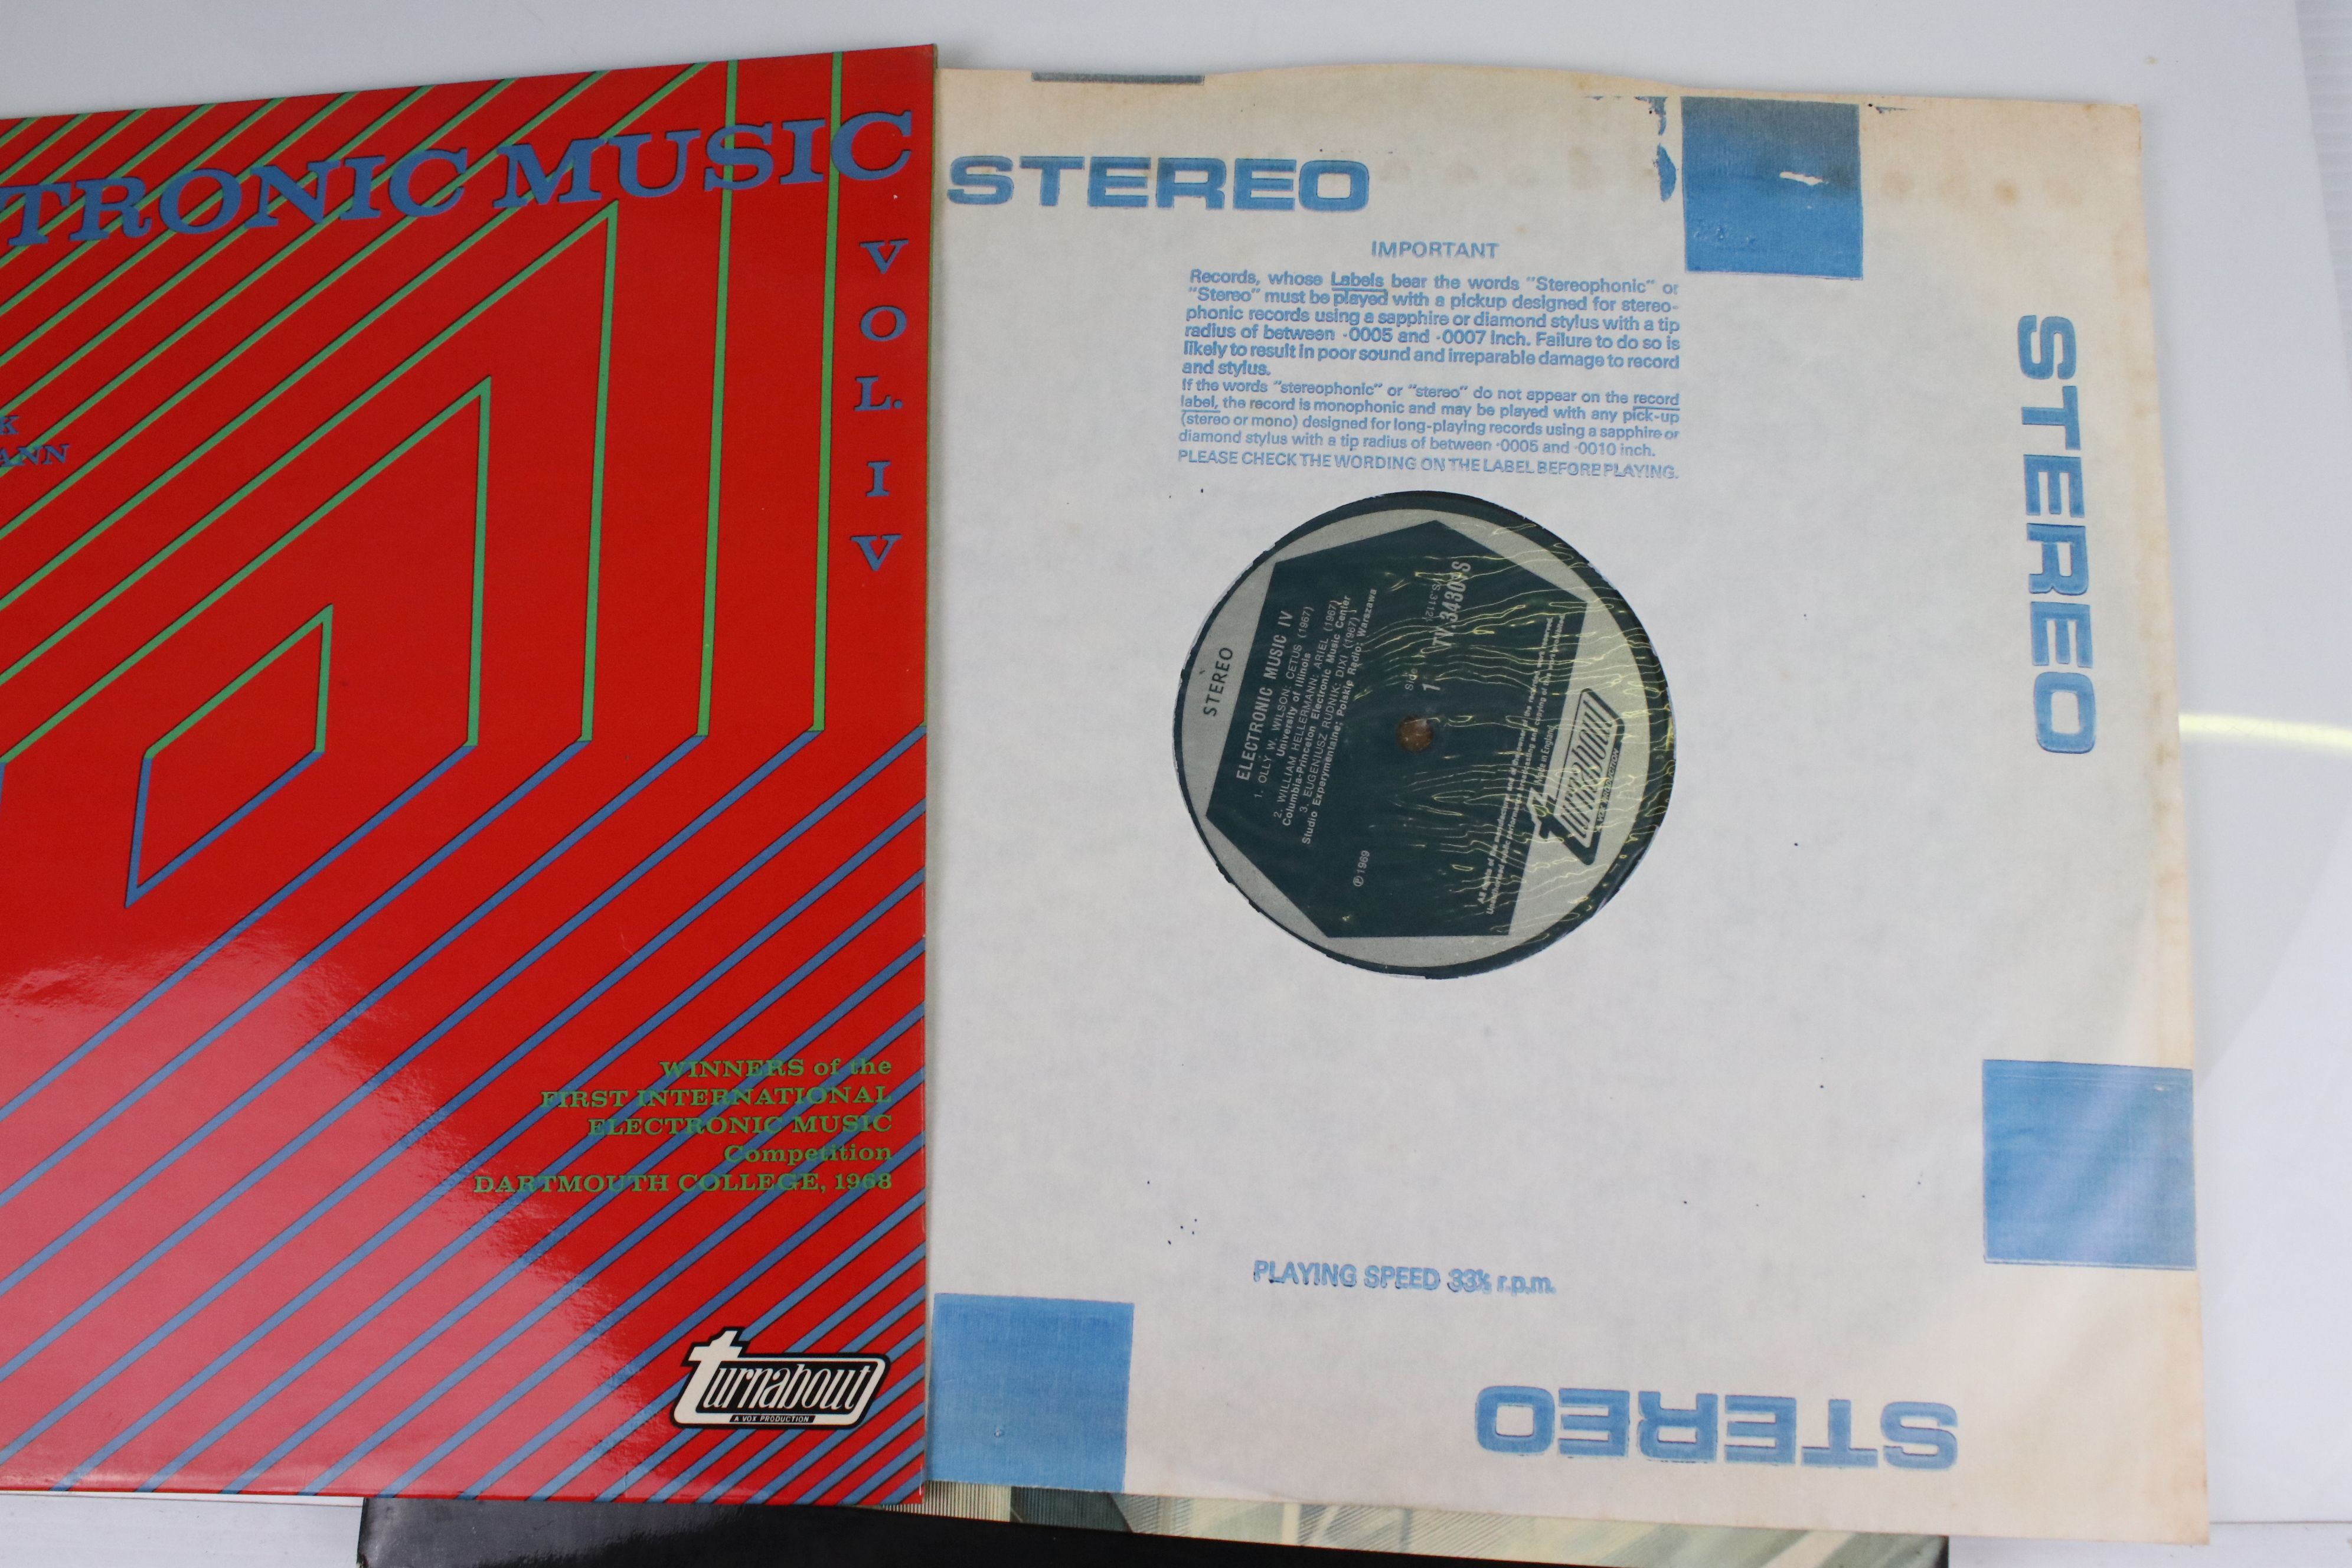 Vinyl - Four Electronic Classical LPs to include Terry Riley In C, Philip Glass Koyaanisqqatsi, - Image 3 of 6